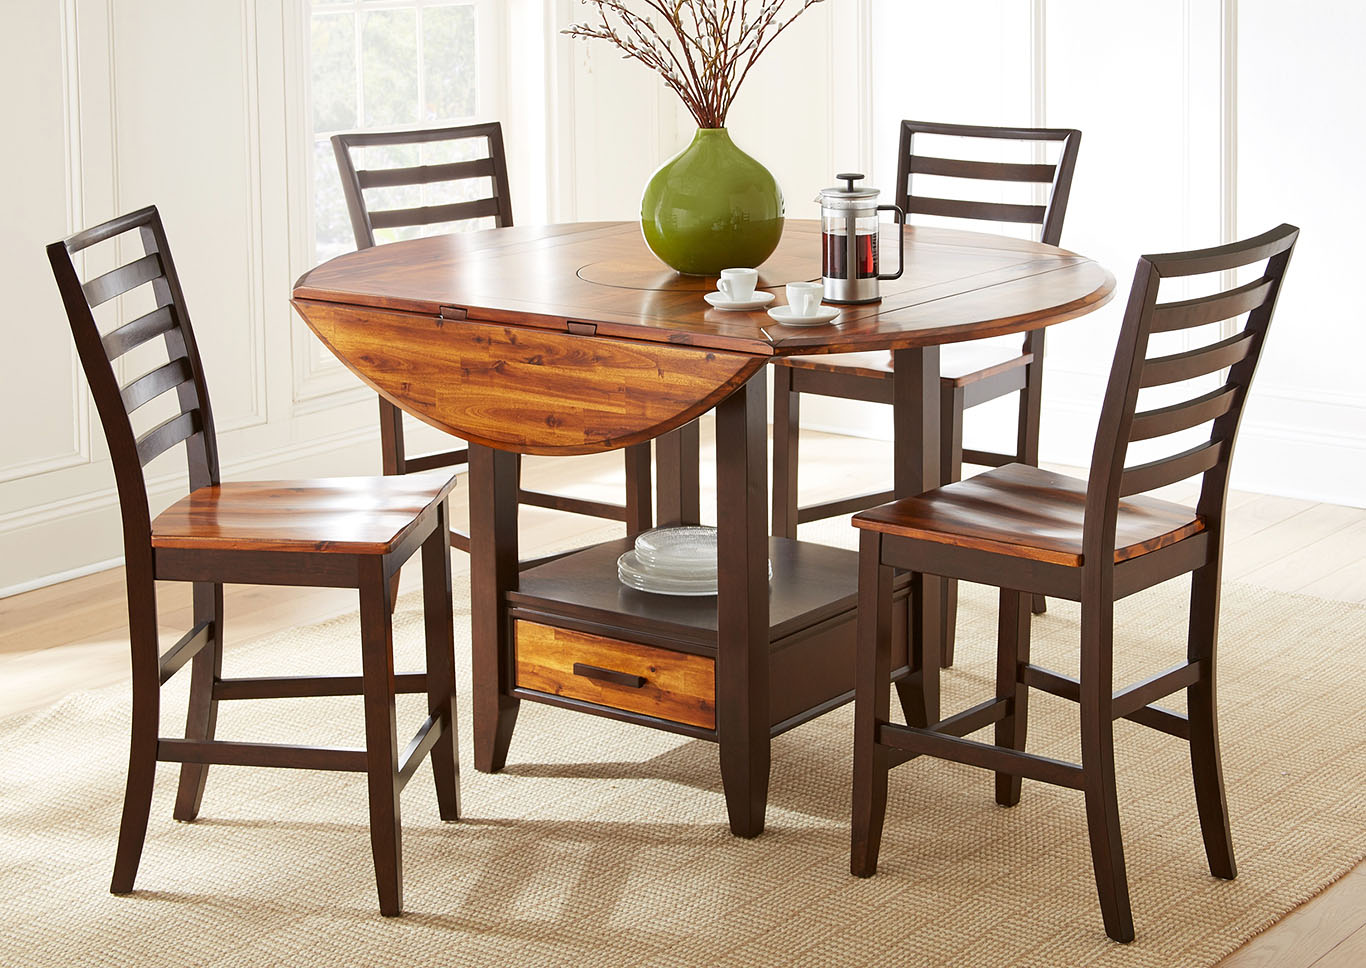 Abaco Brown Round Counter Dining Set W/ 4 Chairs,Steve Silver